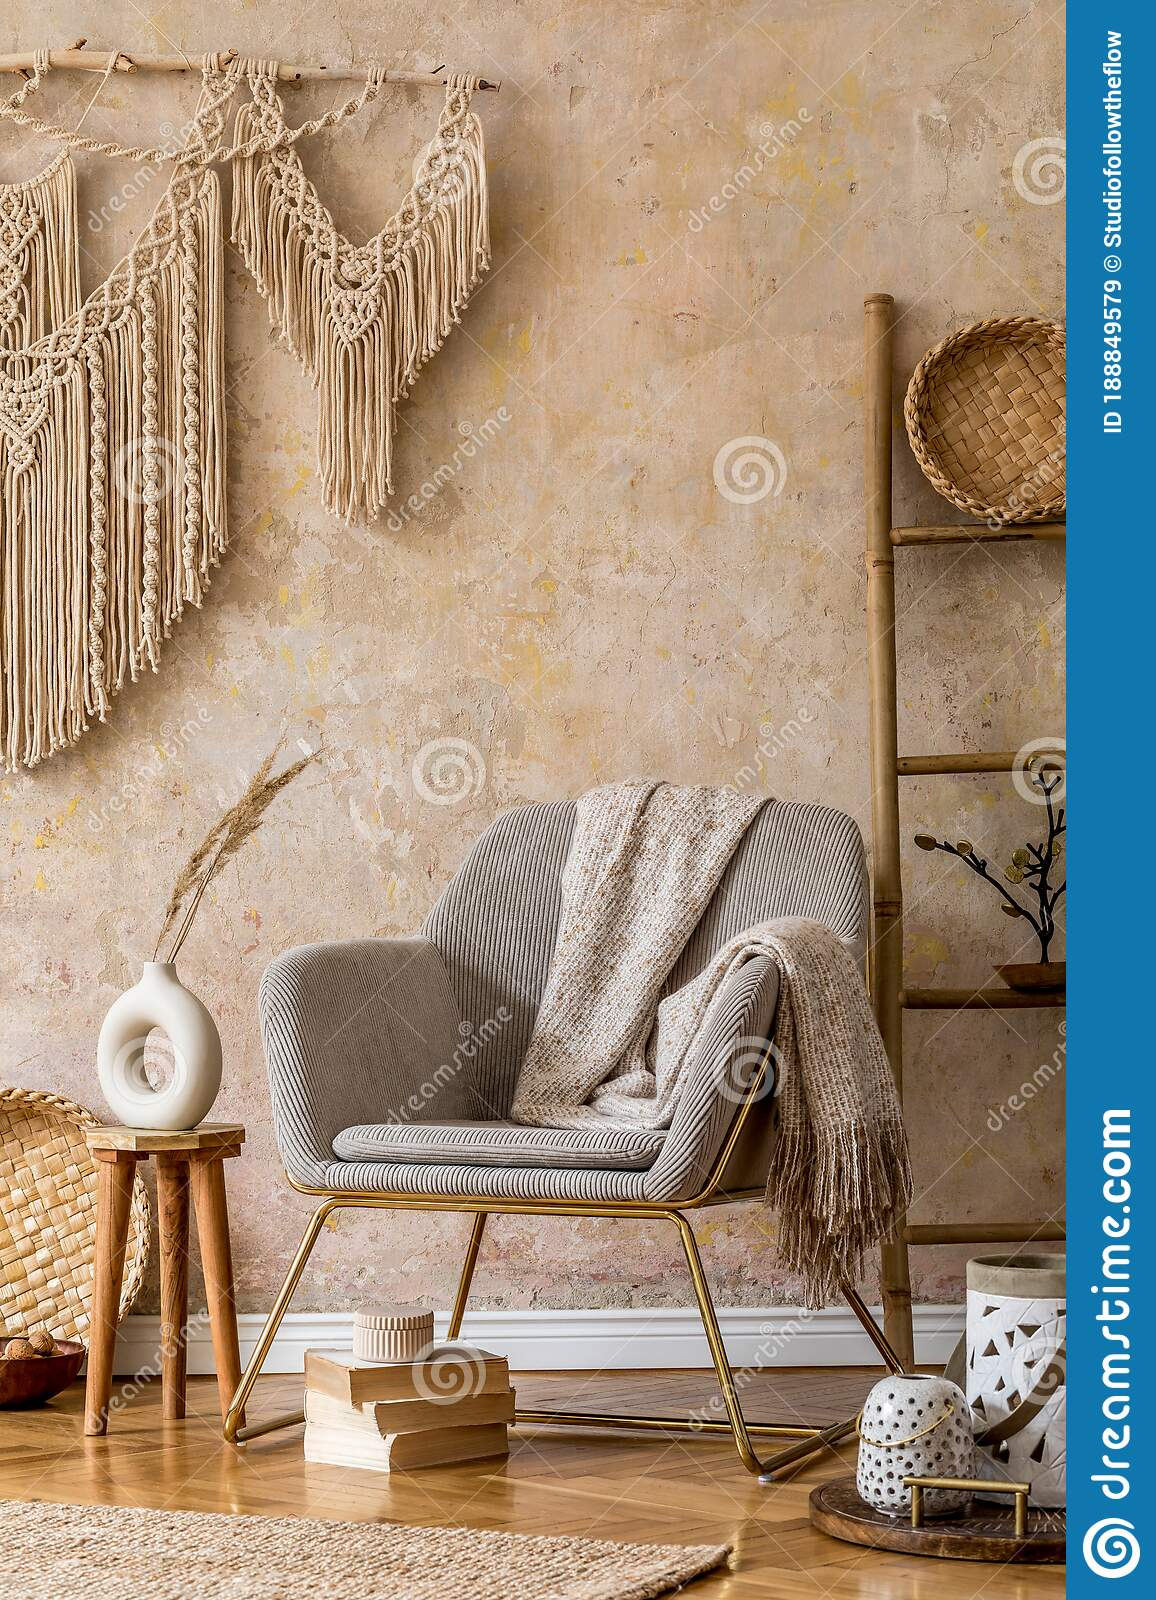 Stylish Oriental Living Room With Design Armchair Beautiful Macrame Wooden Ladder Plant Decoration Carpet Coffee Table Book Stock Image Image Of Modern Home 188849579